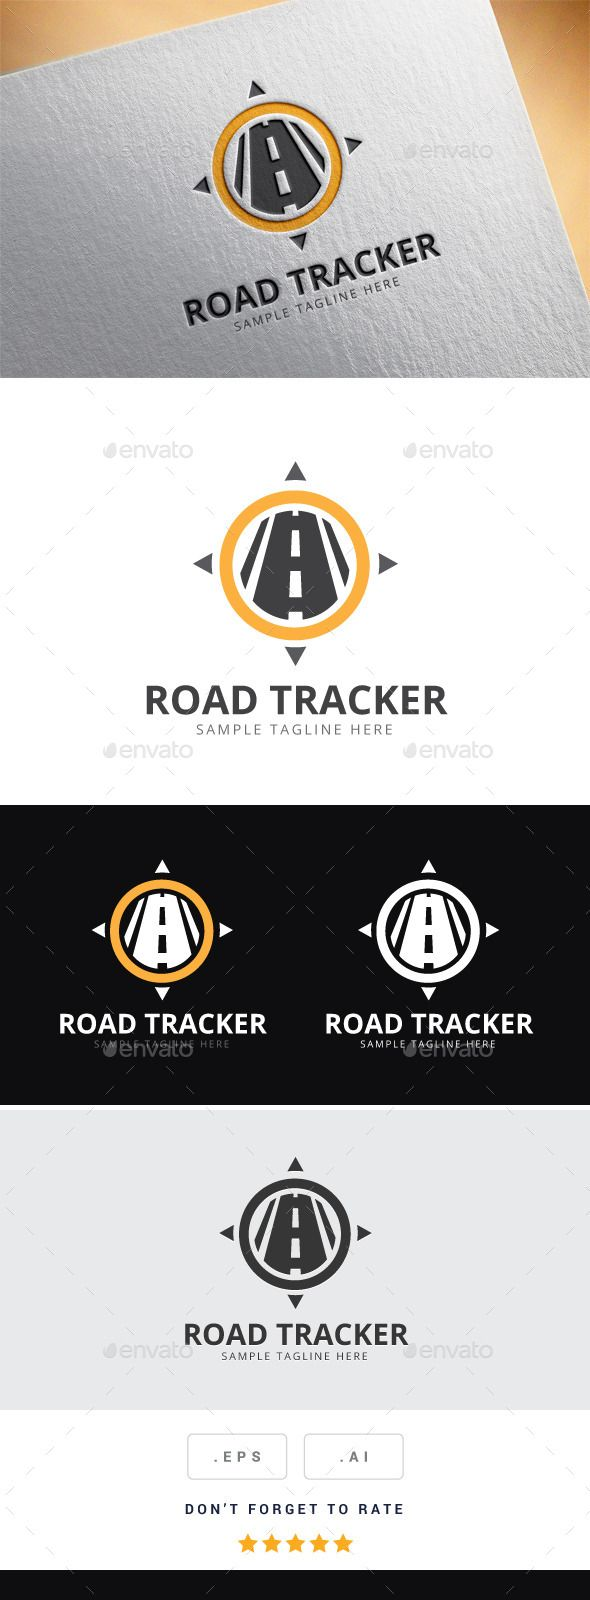 Road Tracker Logo | Logo Design | Pinterest | Transporte ... Y Logo